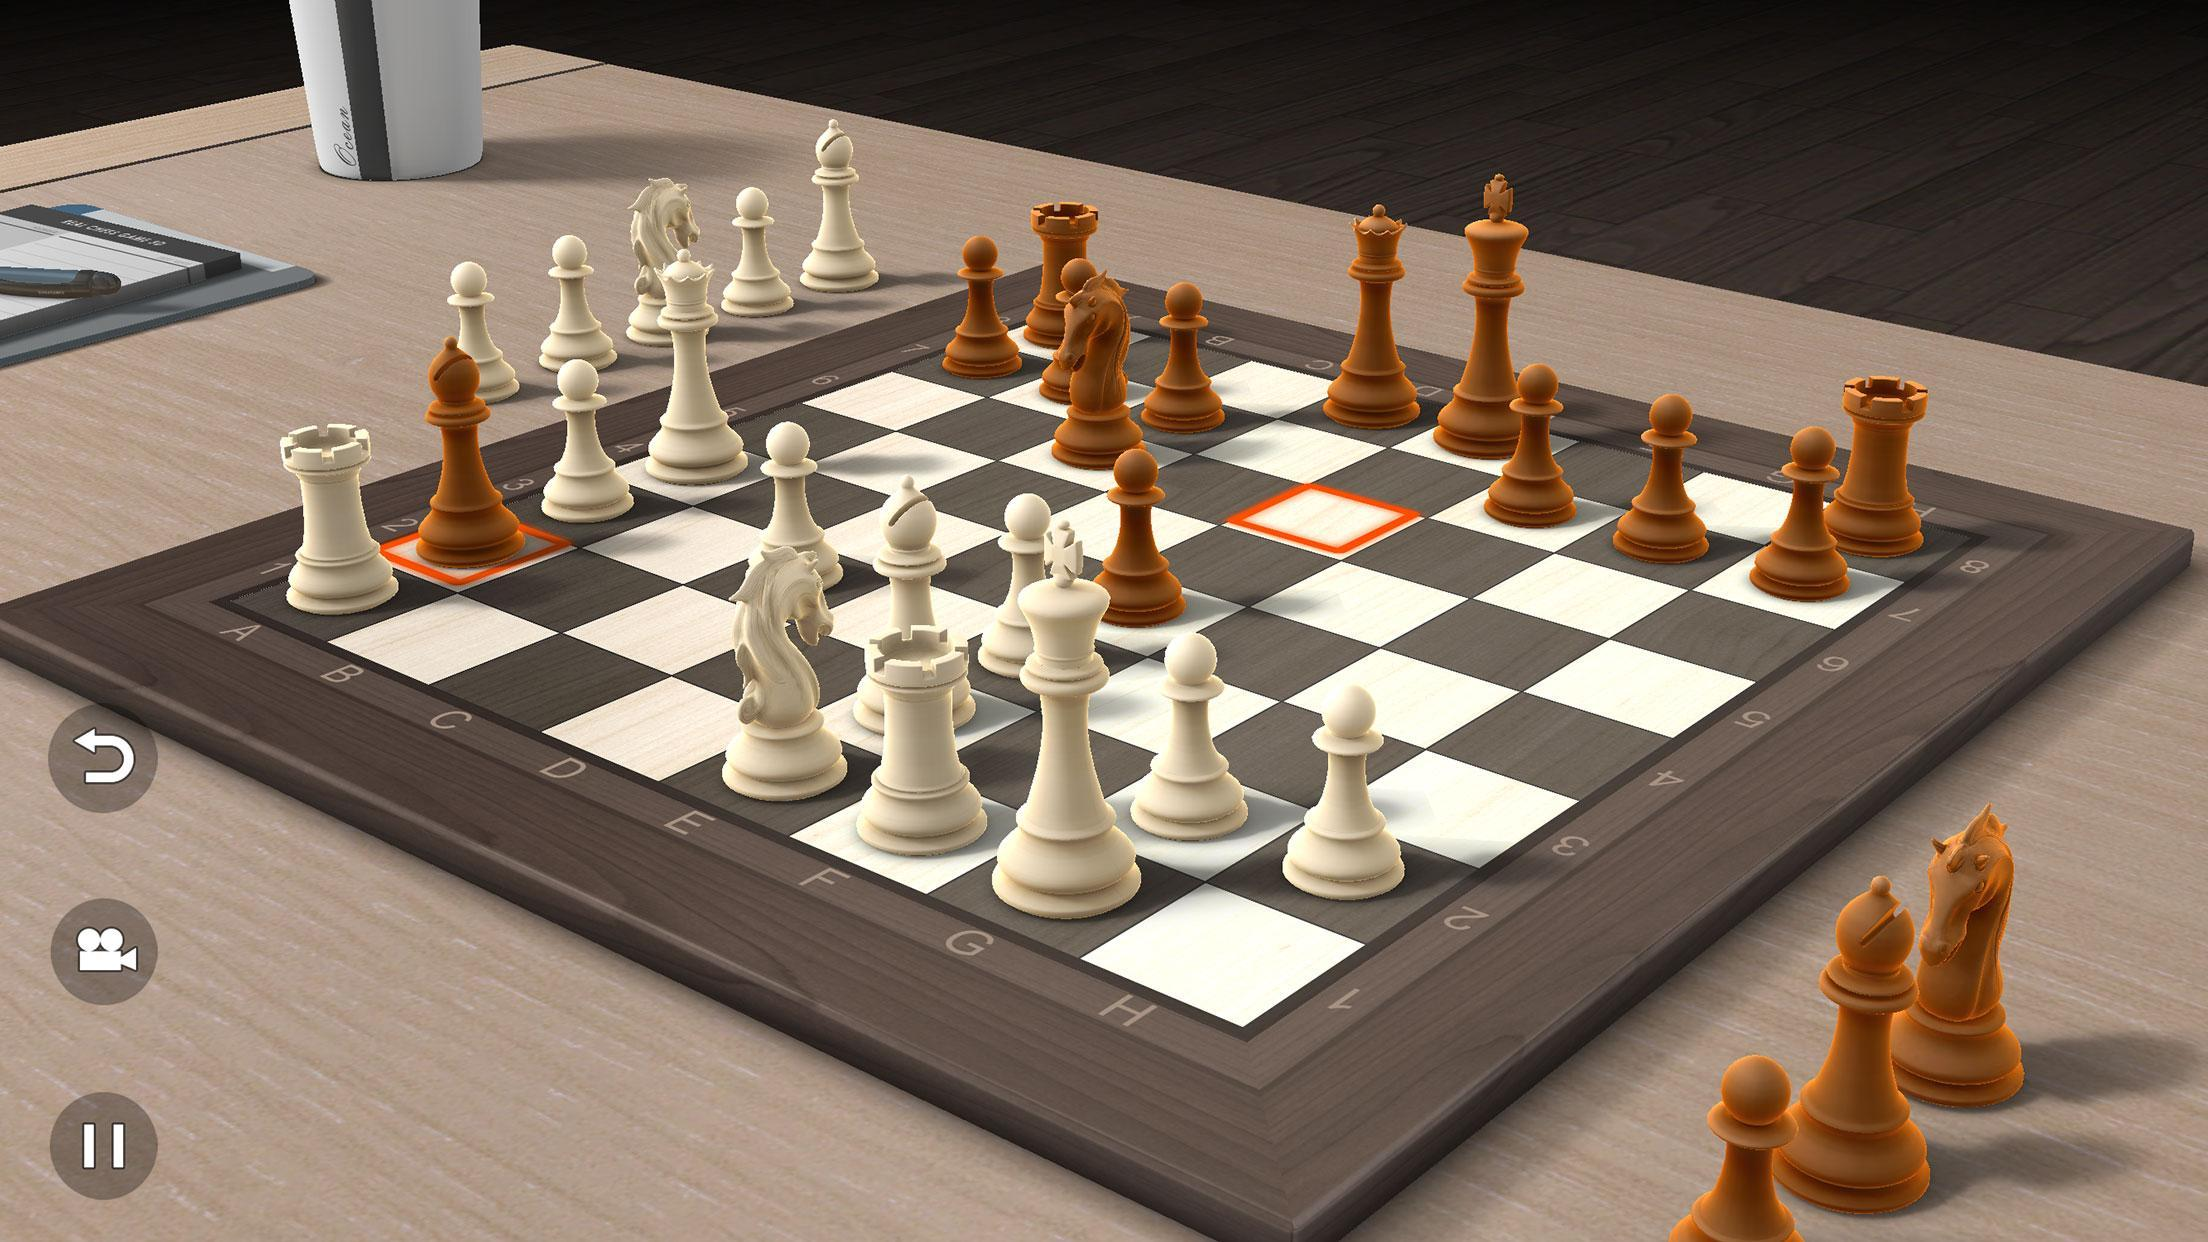 Real Chess 3D for Android - APK Download